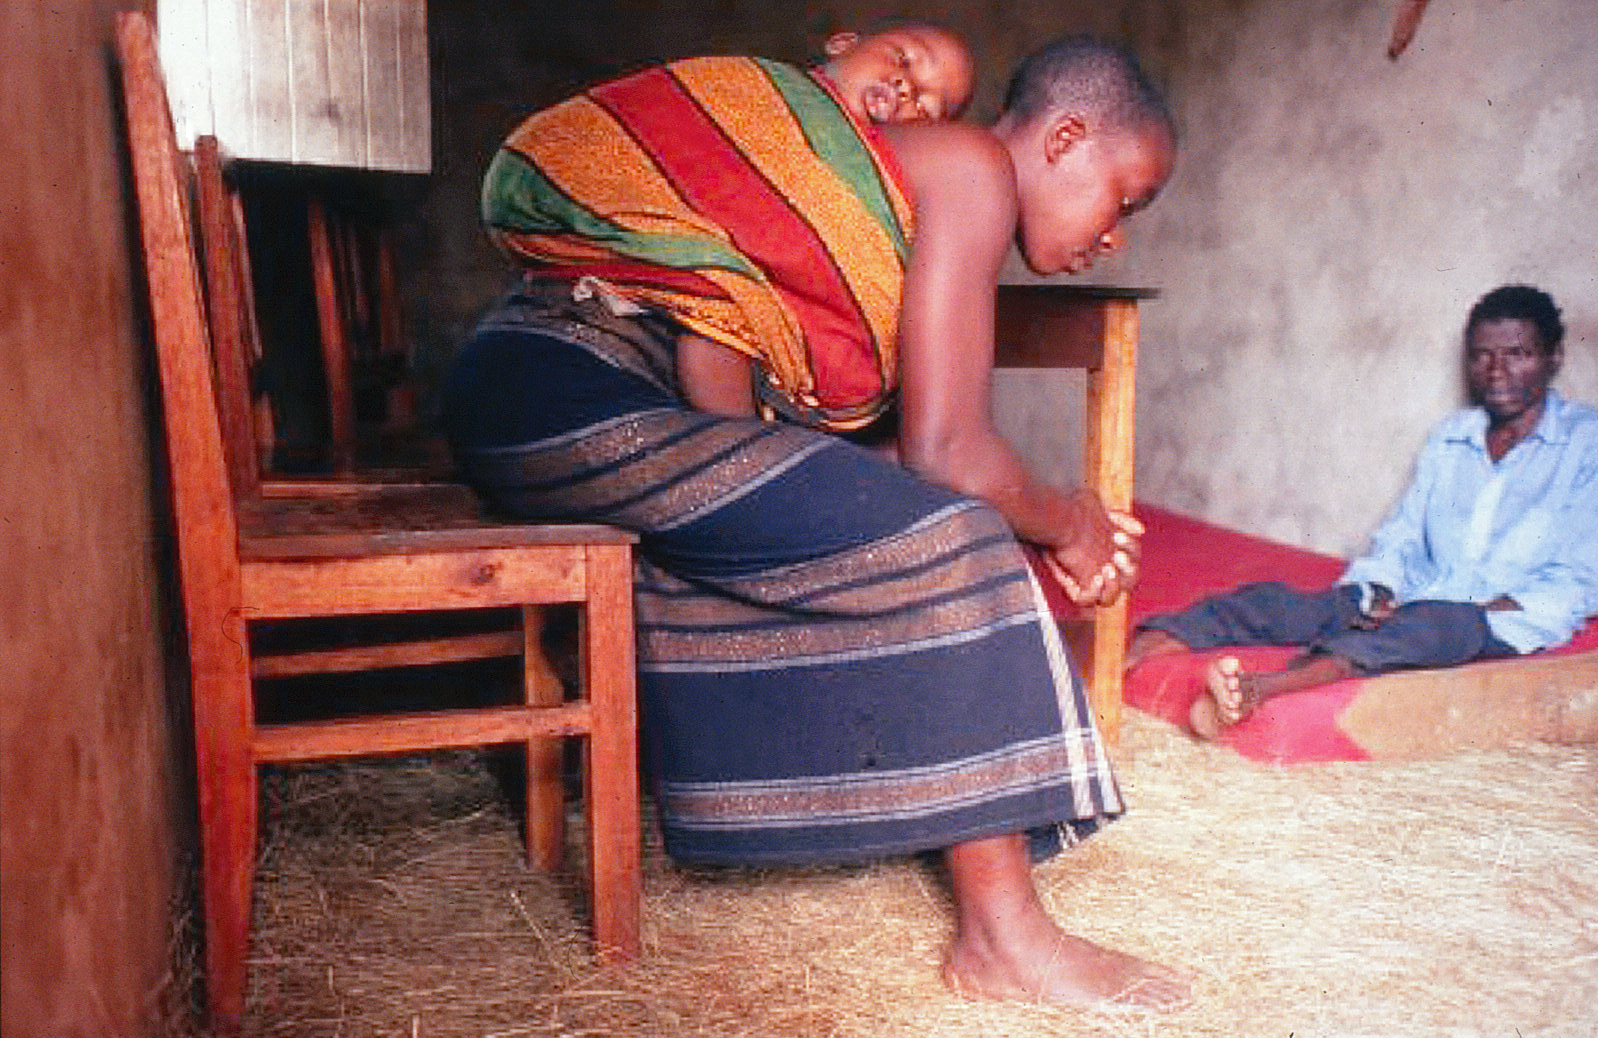 The-whole-family-is-dying-of-AIDS-near-Bukoba-Tanzania--1998-(deleted-4db1d21a-98b92e-8dda4a80).jpg